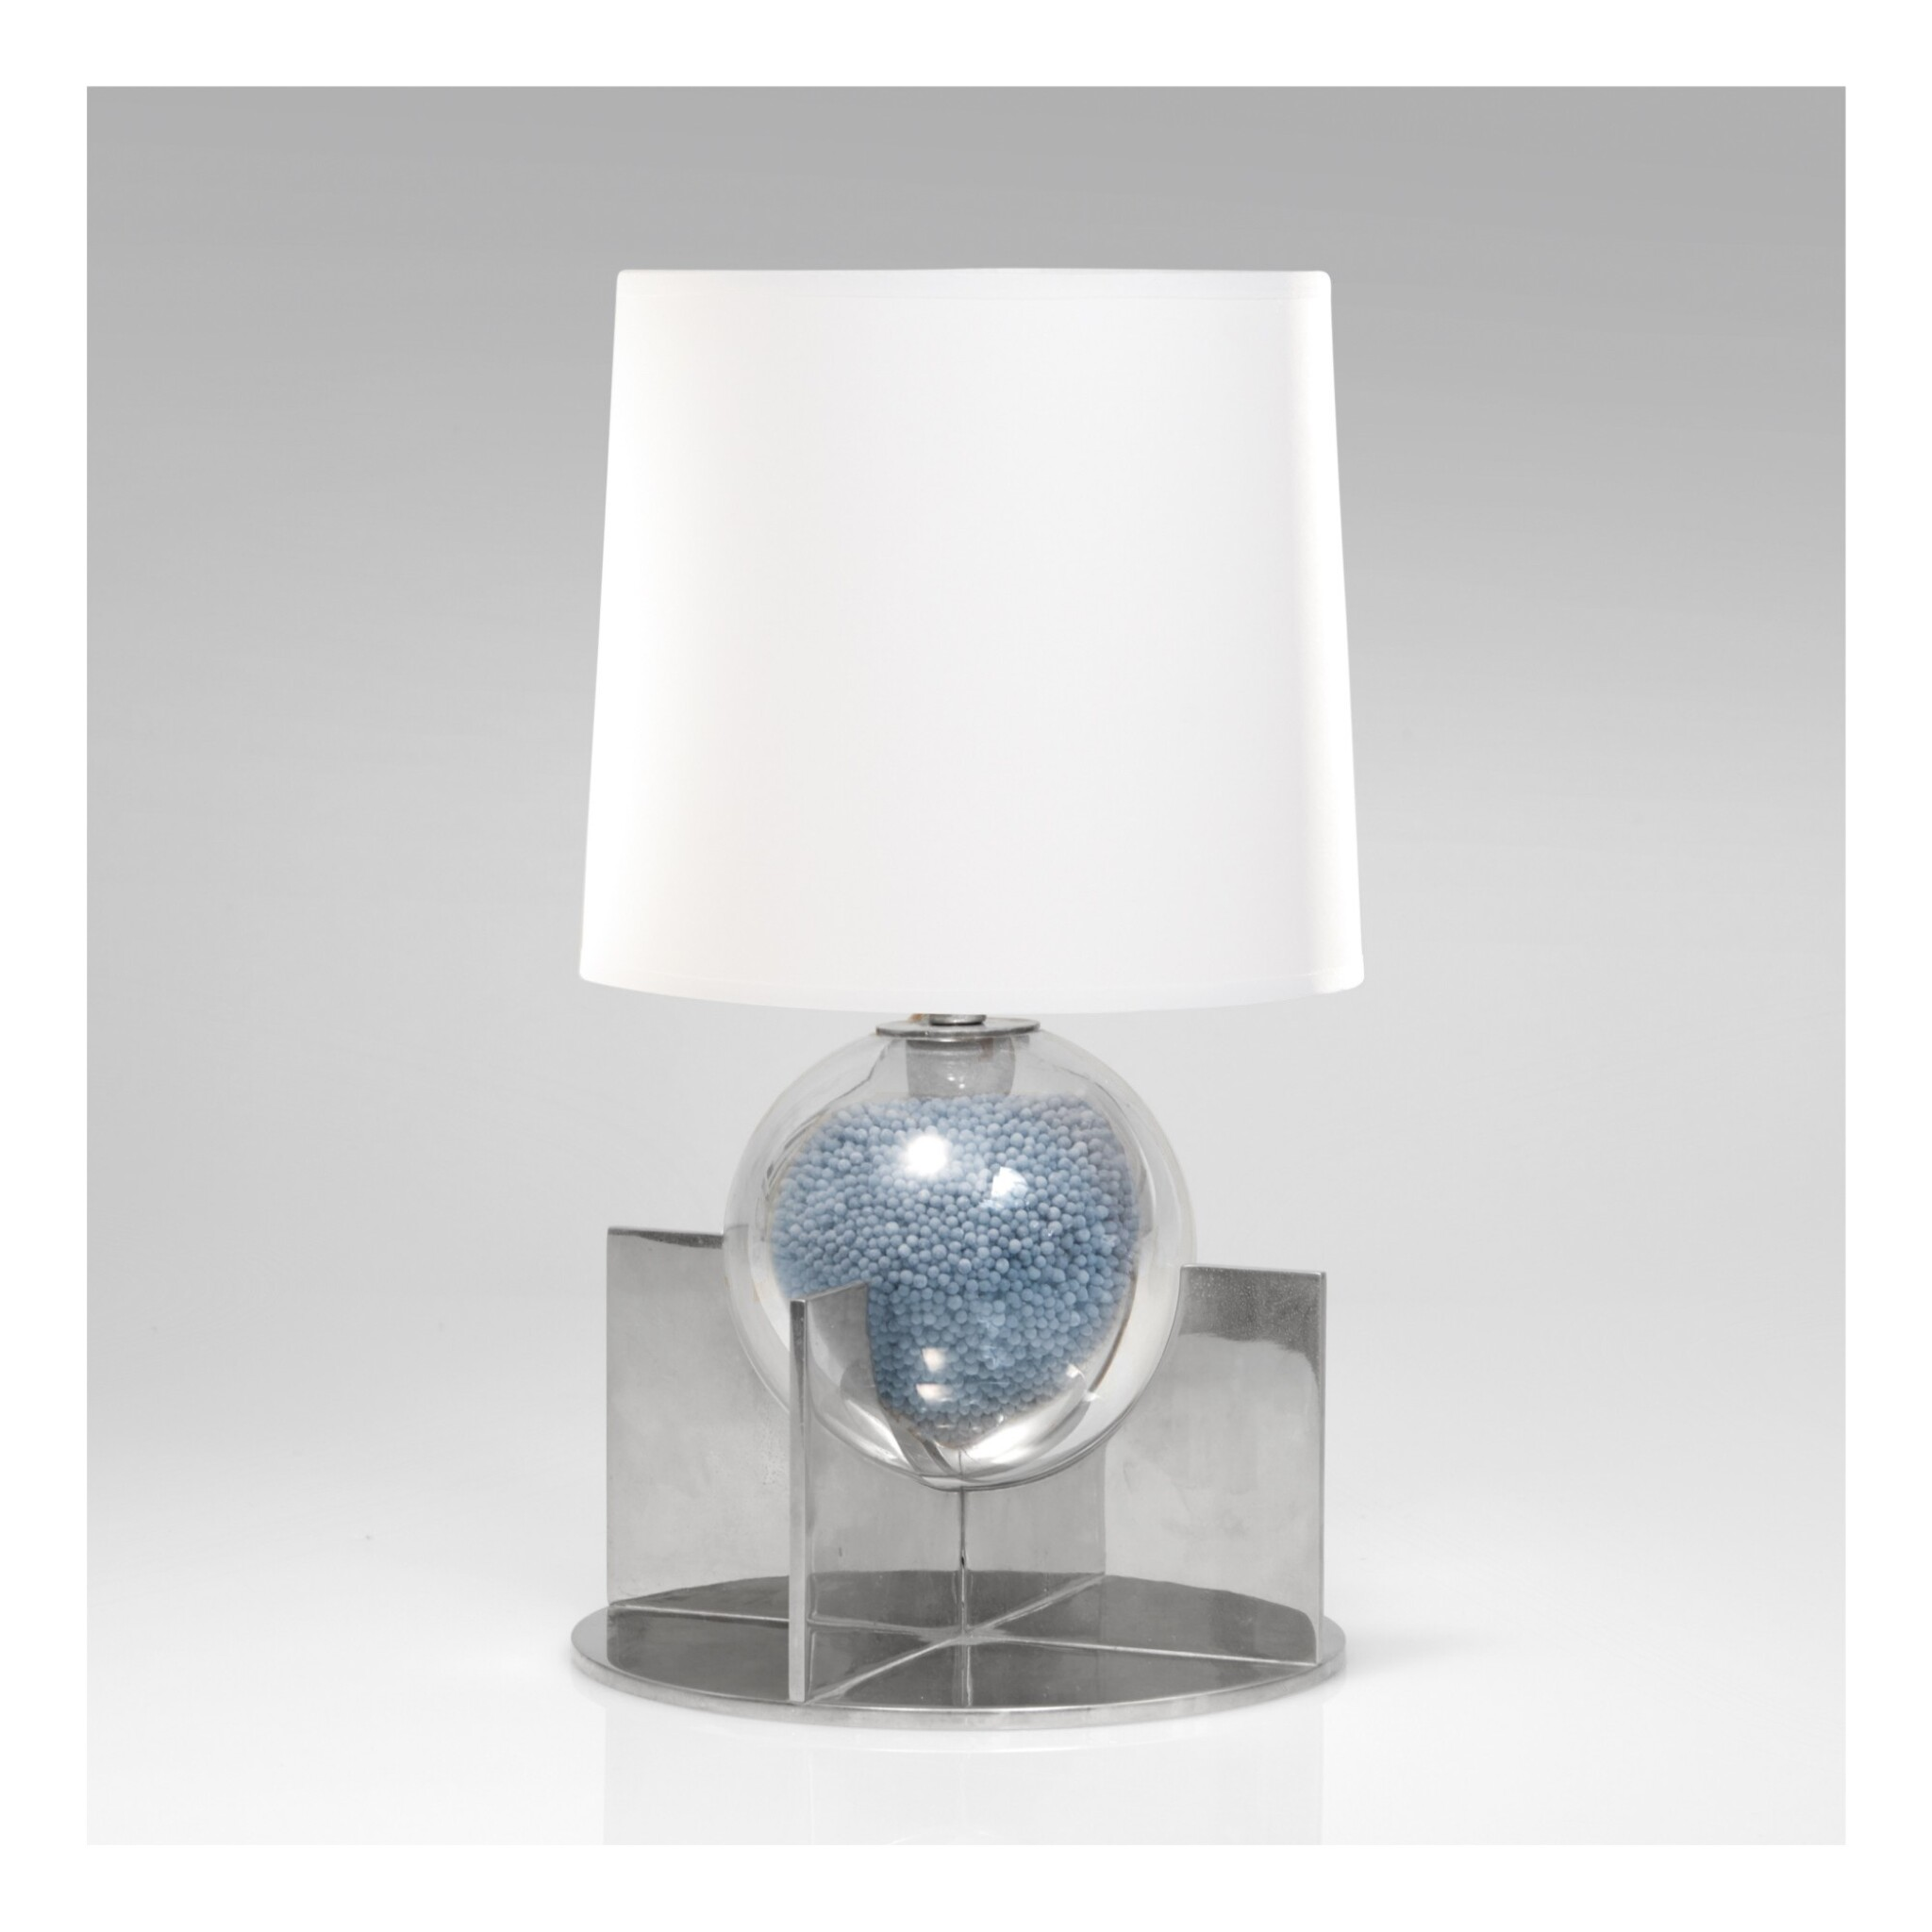 View 1 of Lot 29. Table Lamp.